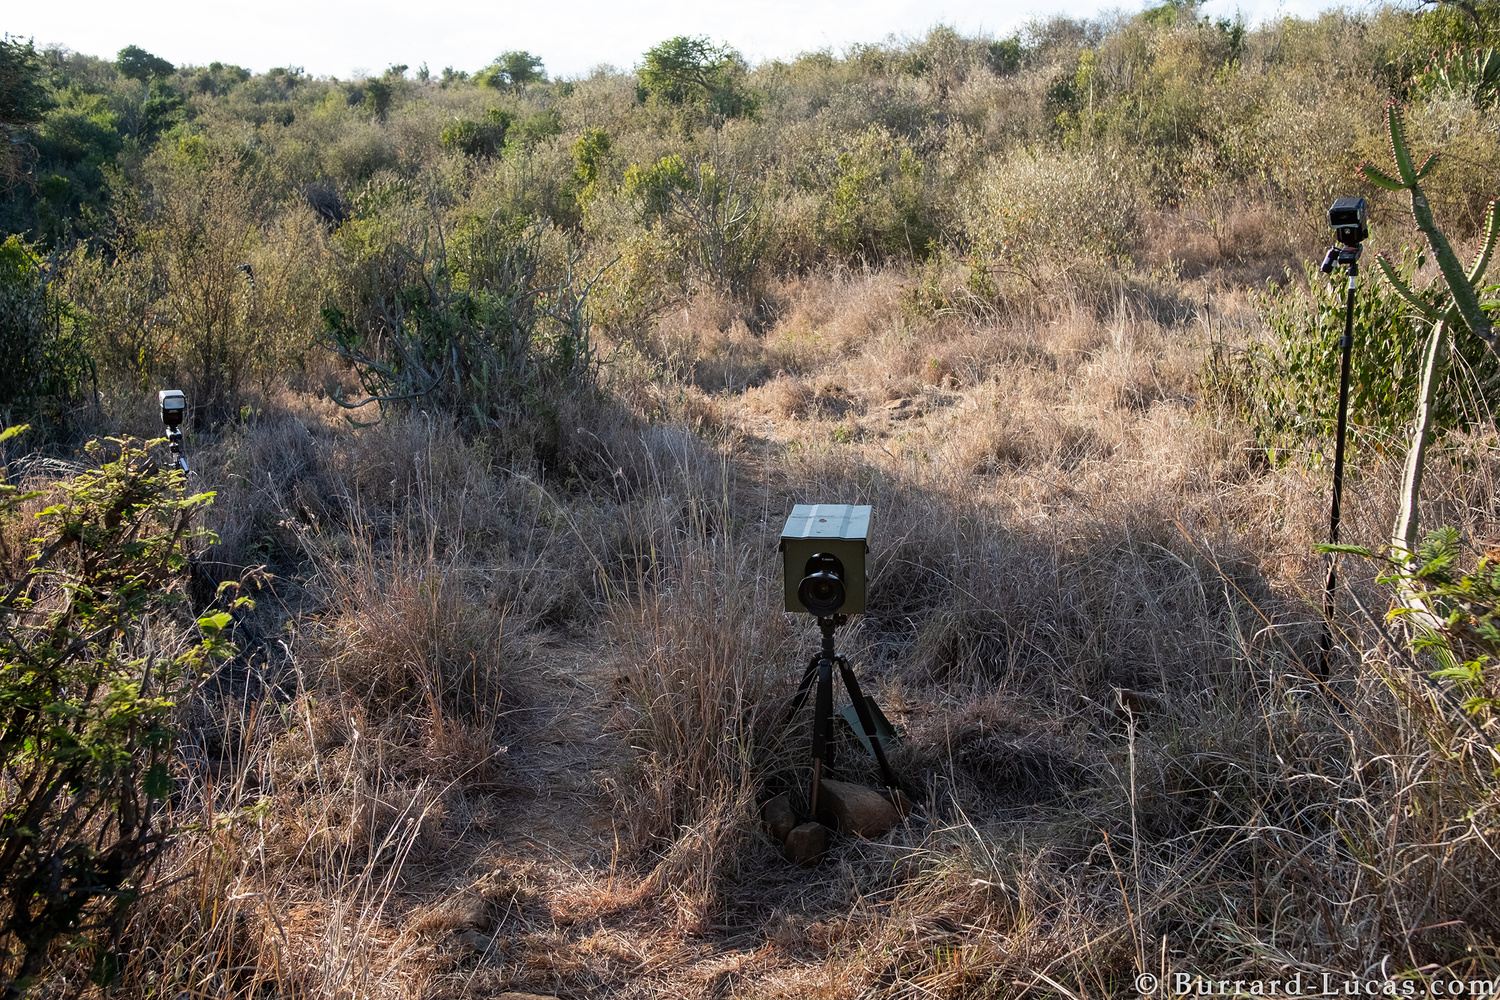 a behind-the-scenes image showing a remote wildlife photography setup in Kenya